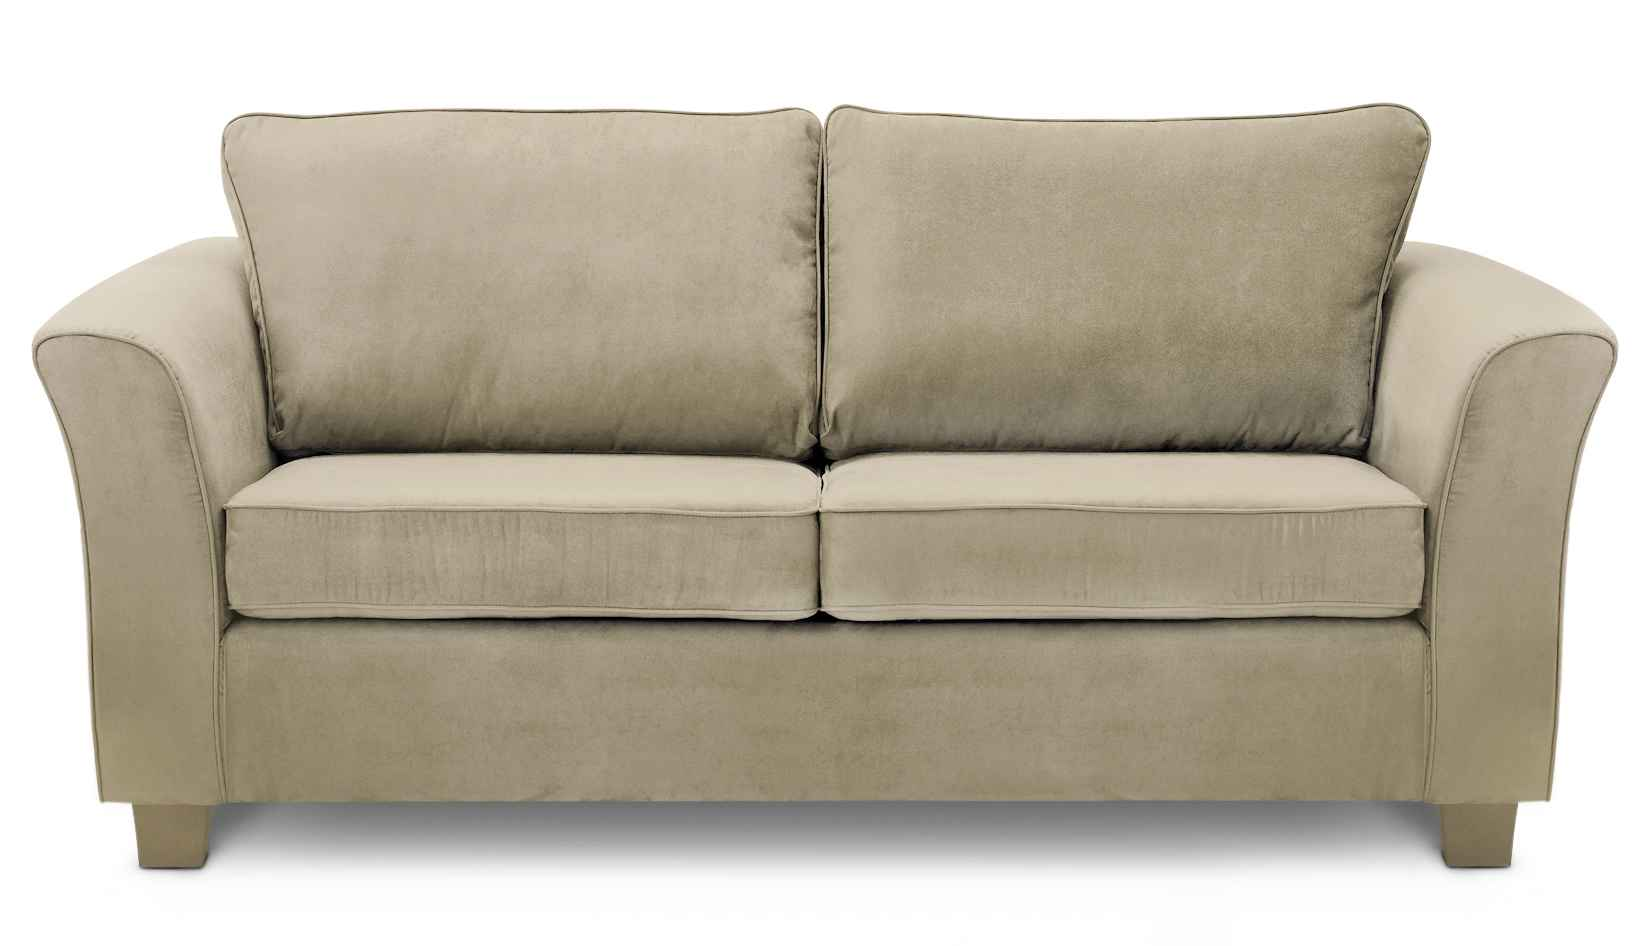 Overstock Leather Couches Feel The Home